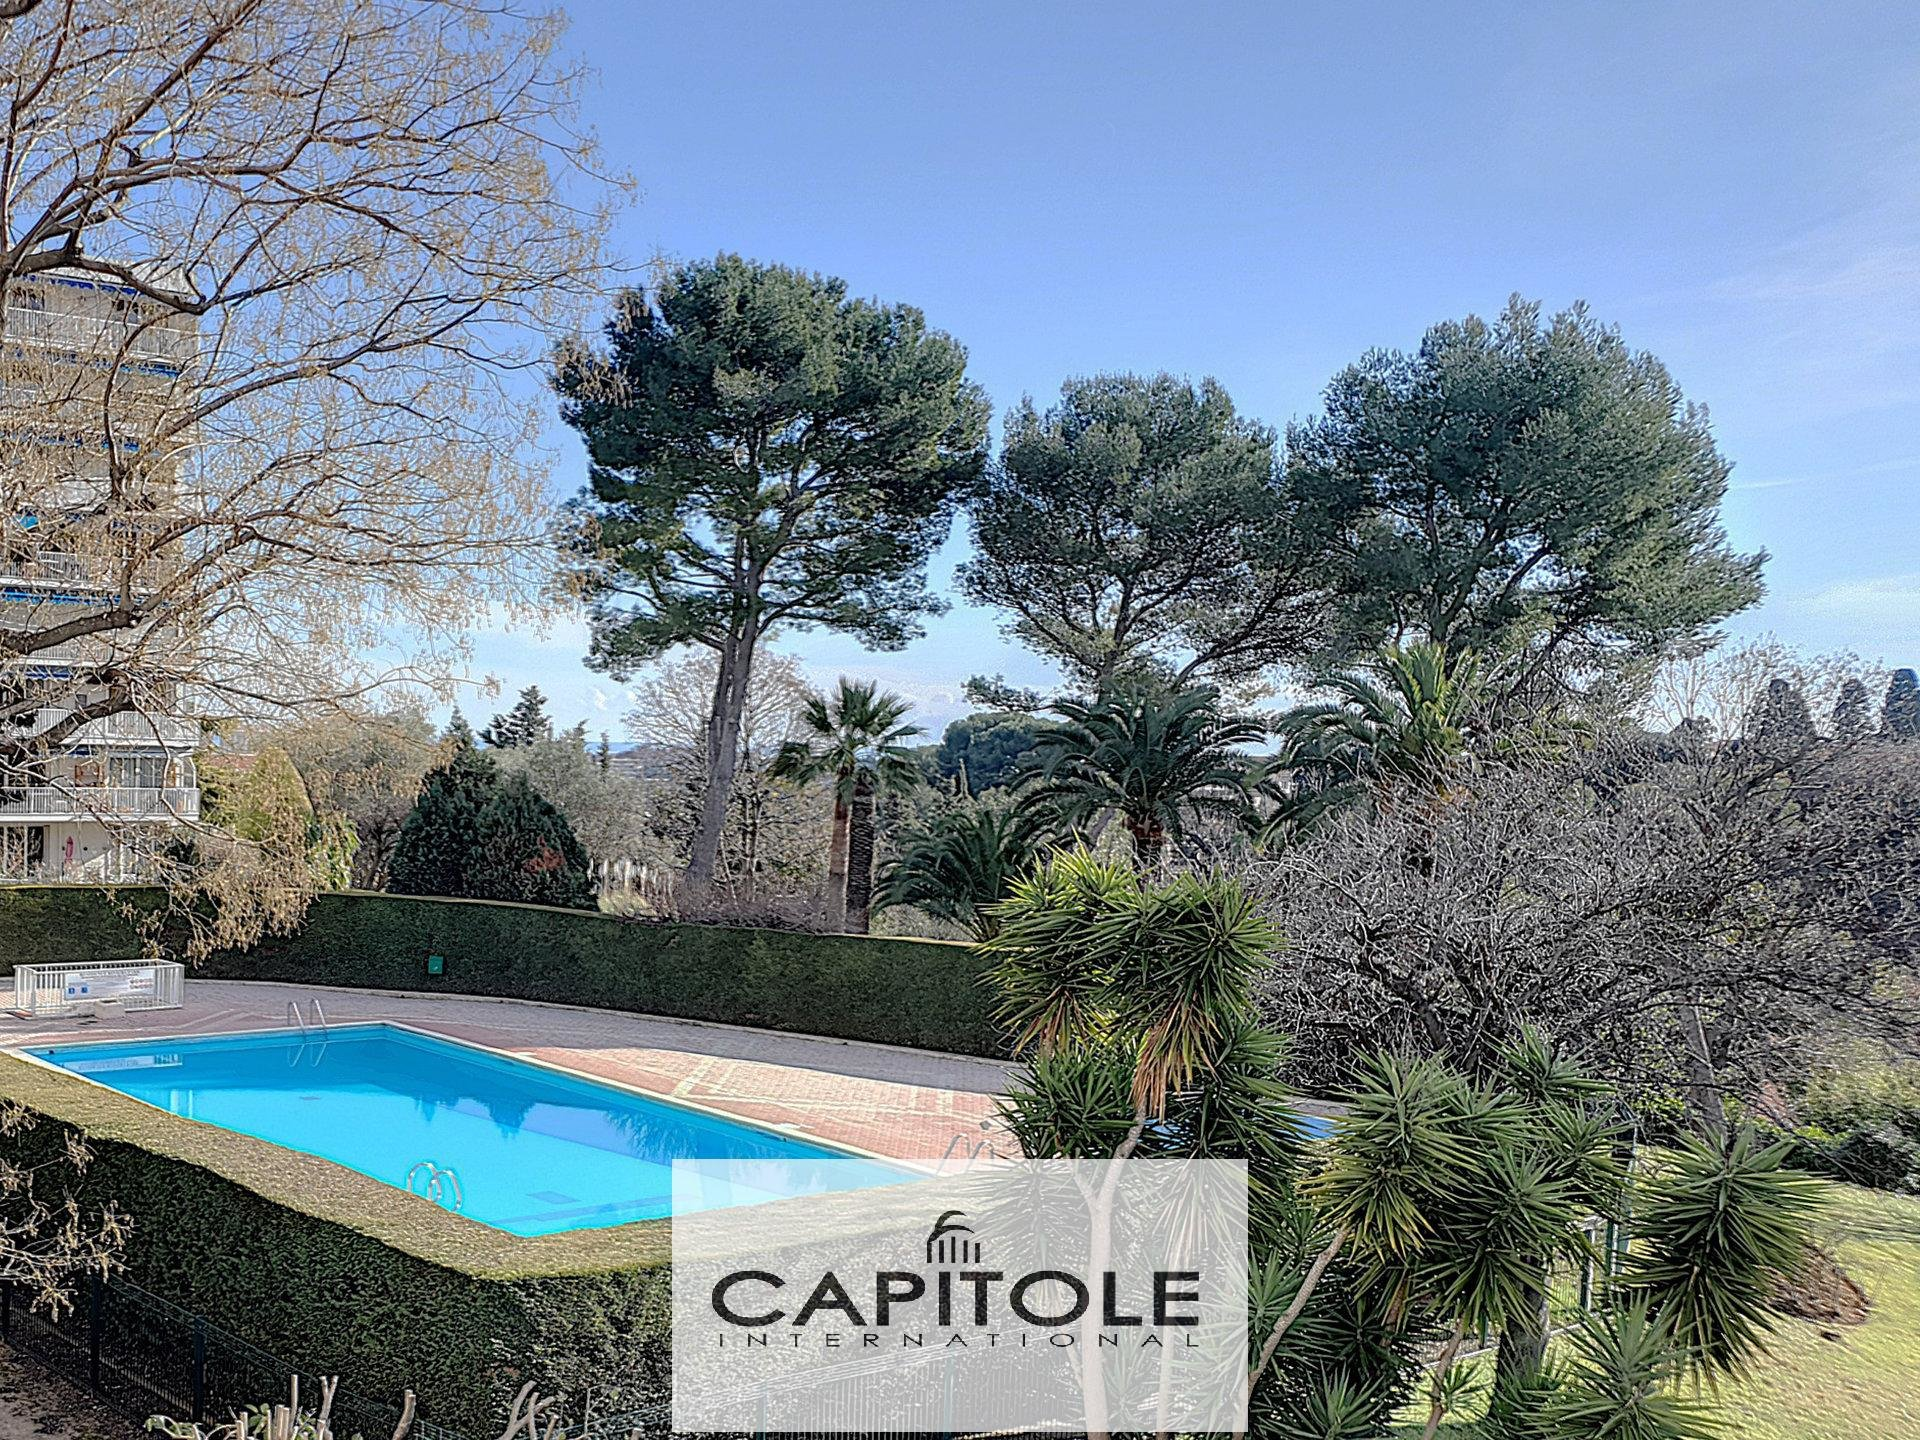 For sale, Antibes sole agent, 1 bedroom apartment 48m²,  terrace, cellar, communal swimming pool,